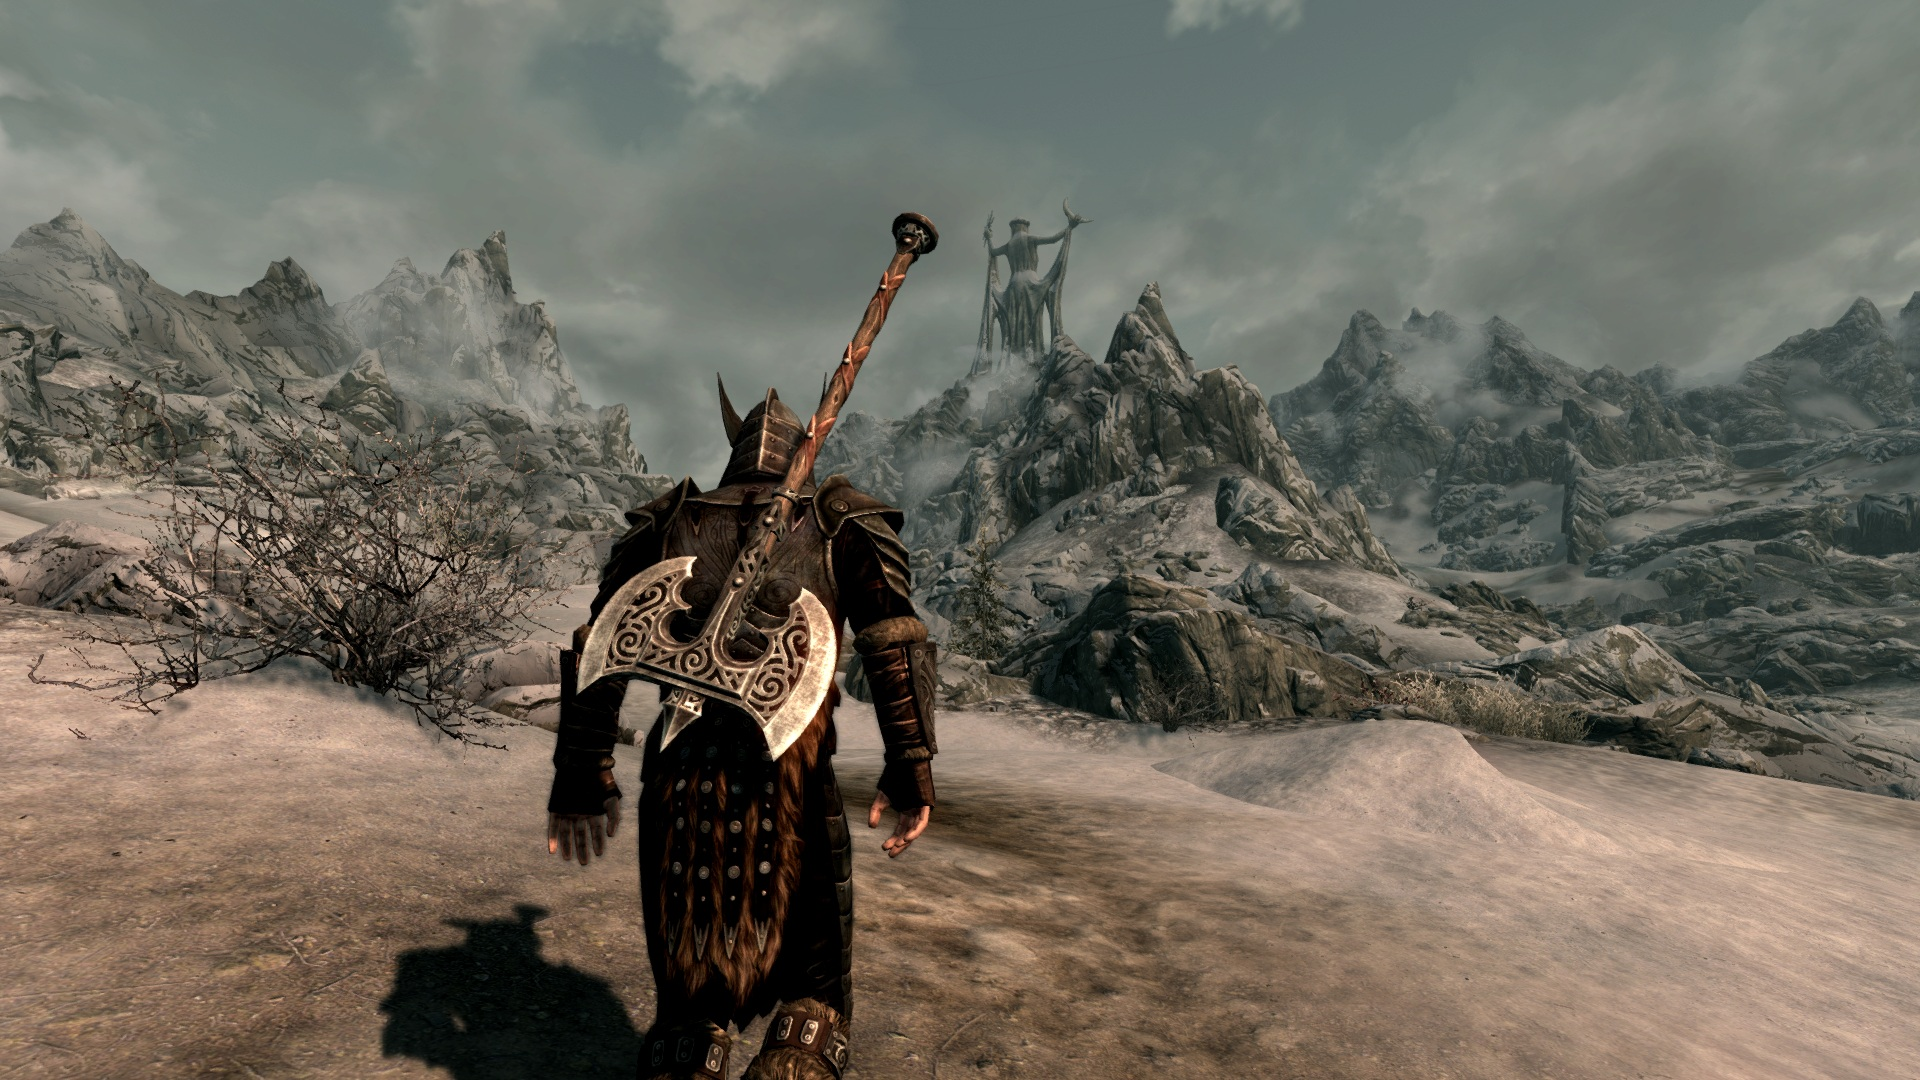 INSS Improved New Skyrim Shadows for Ultra Settings at